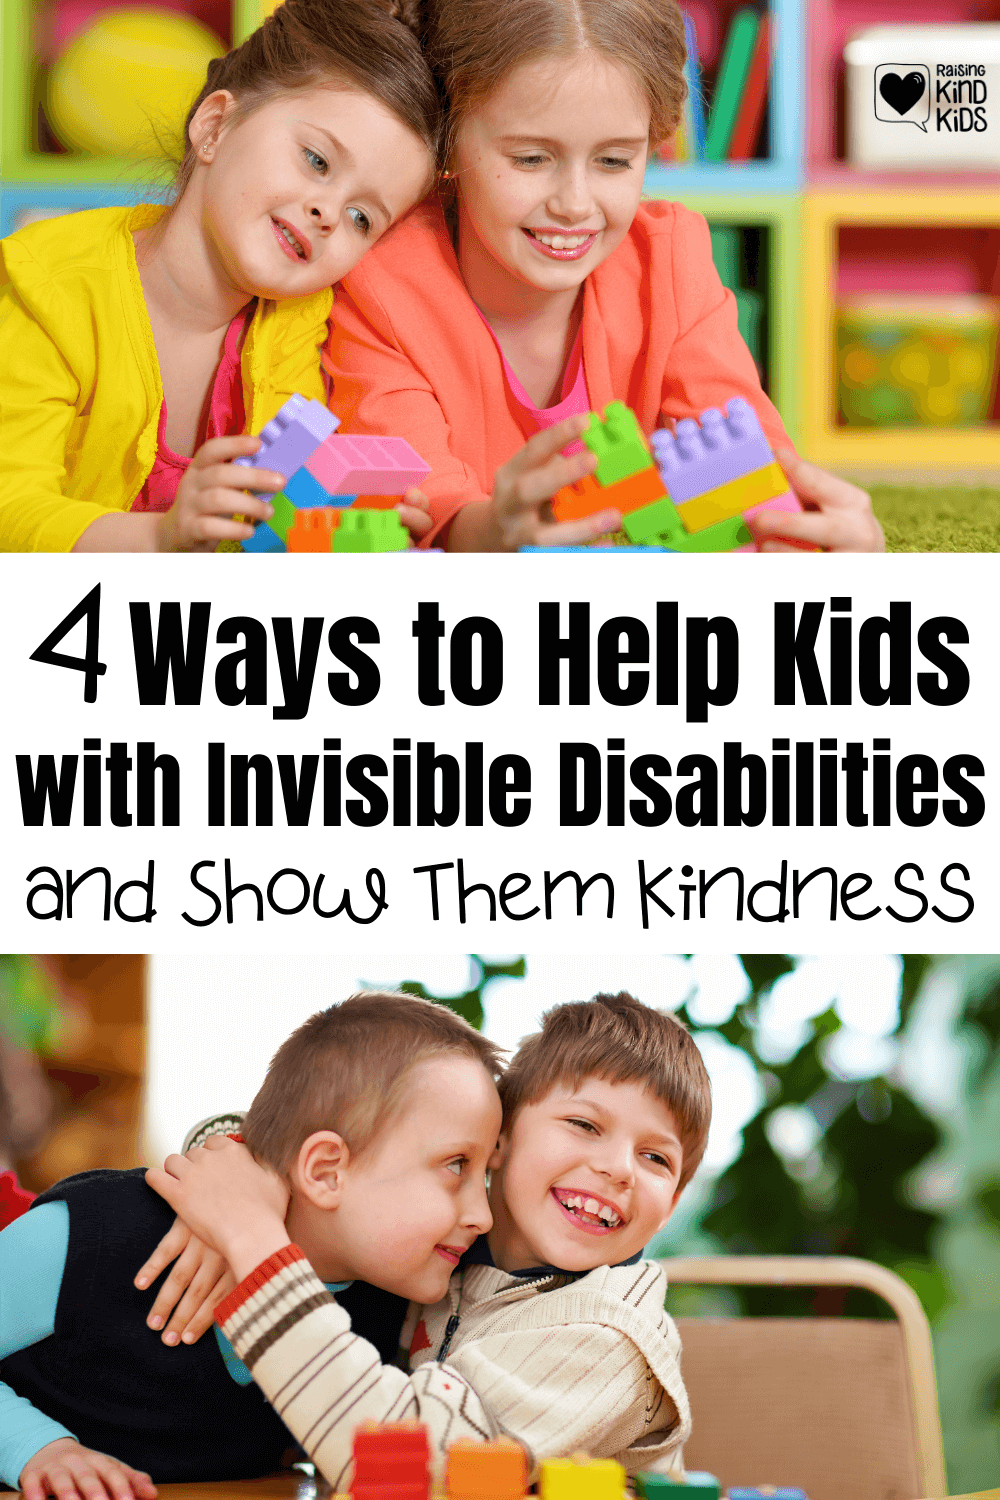 Help your kids be kind to kids who have invisible disabilities with these 4 ways to show more kindness to kids with rare genetic conditions.